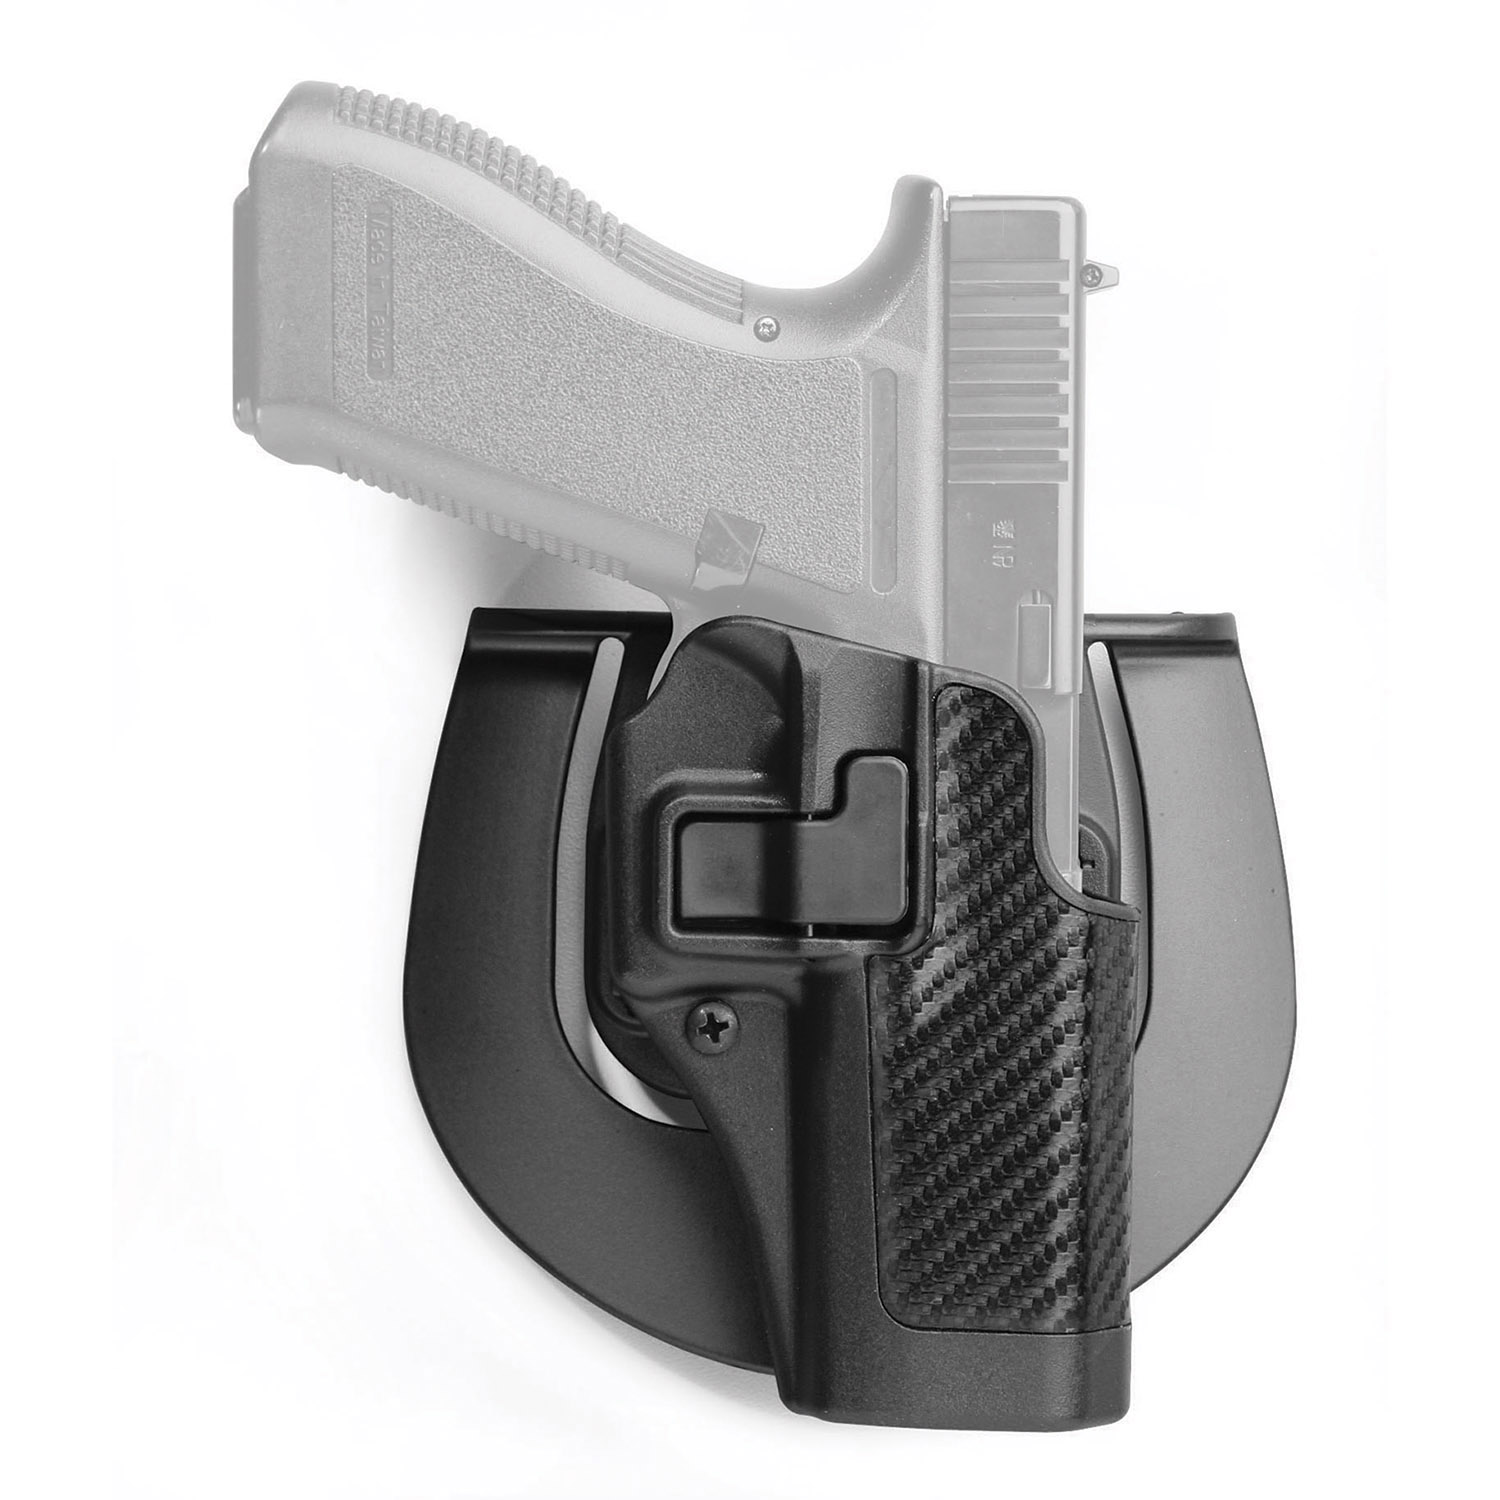 BLACKHAWK! Carbon Fiber CQC Holster with SERPA Technology